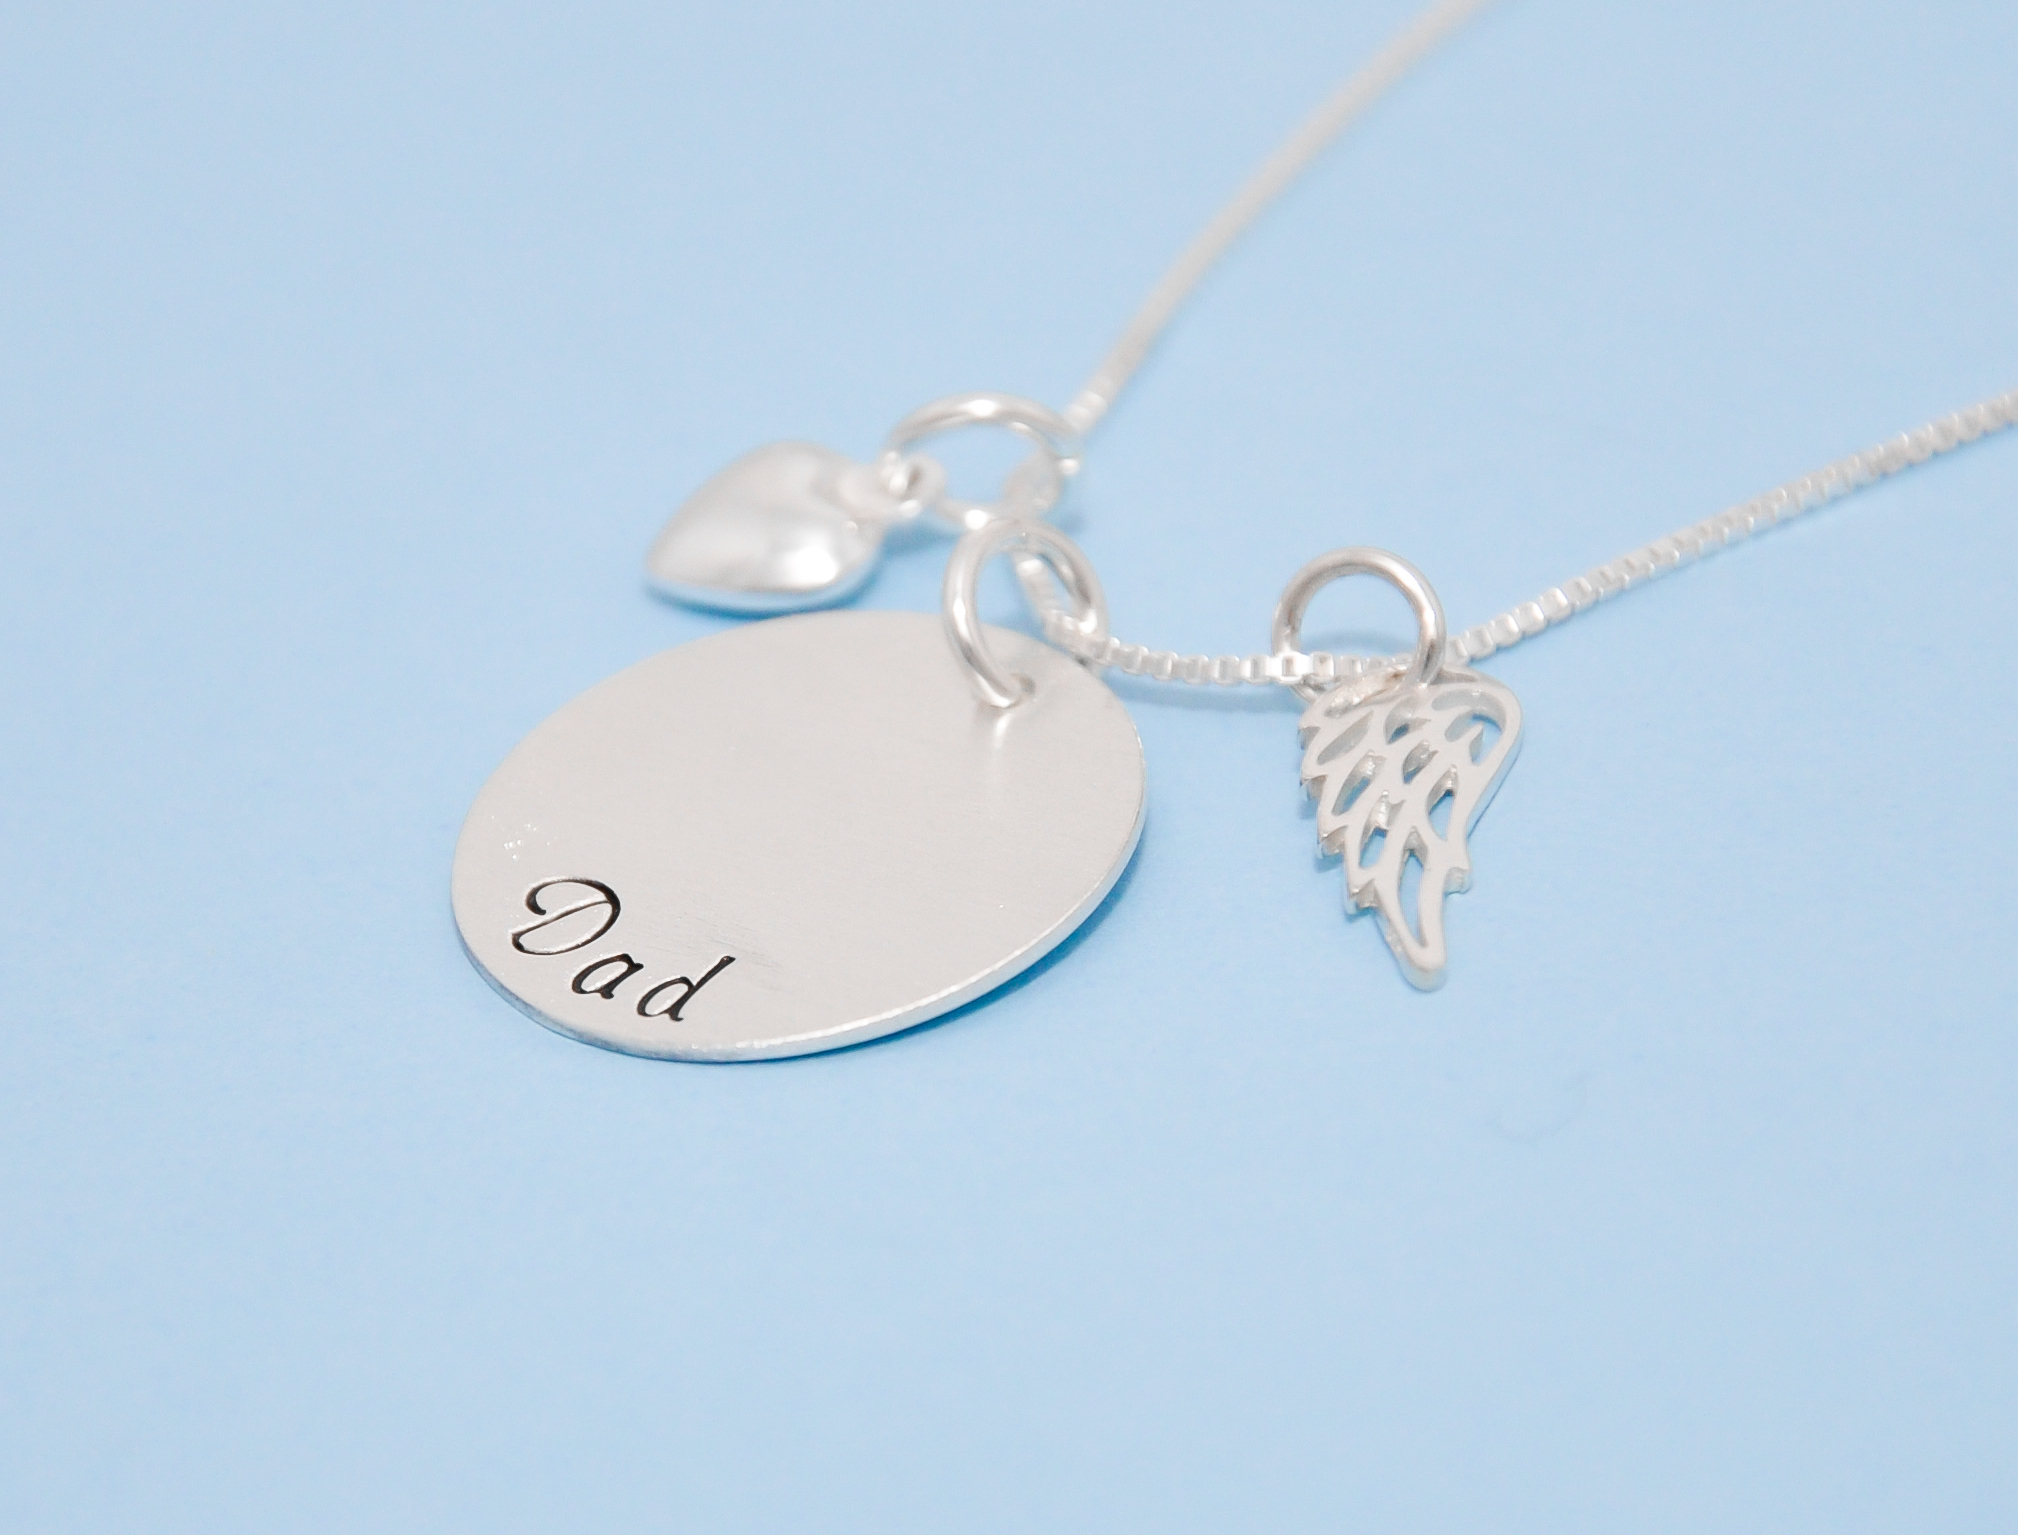 product sterling megan goldner necklace designs pendant ribbon ash silver memorial